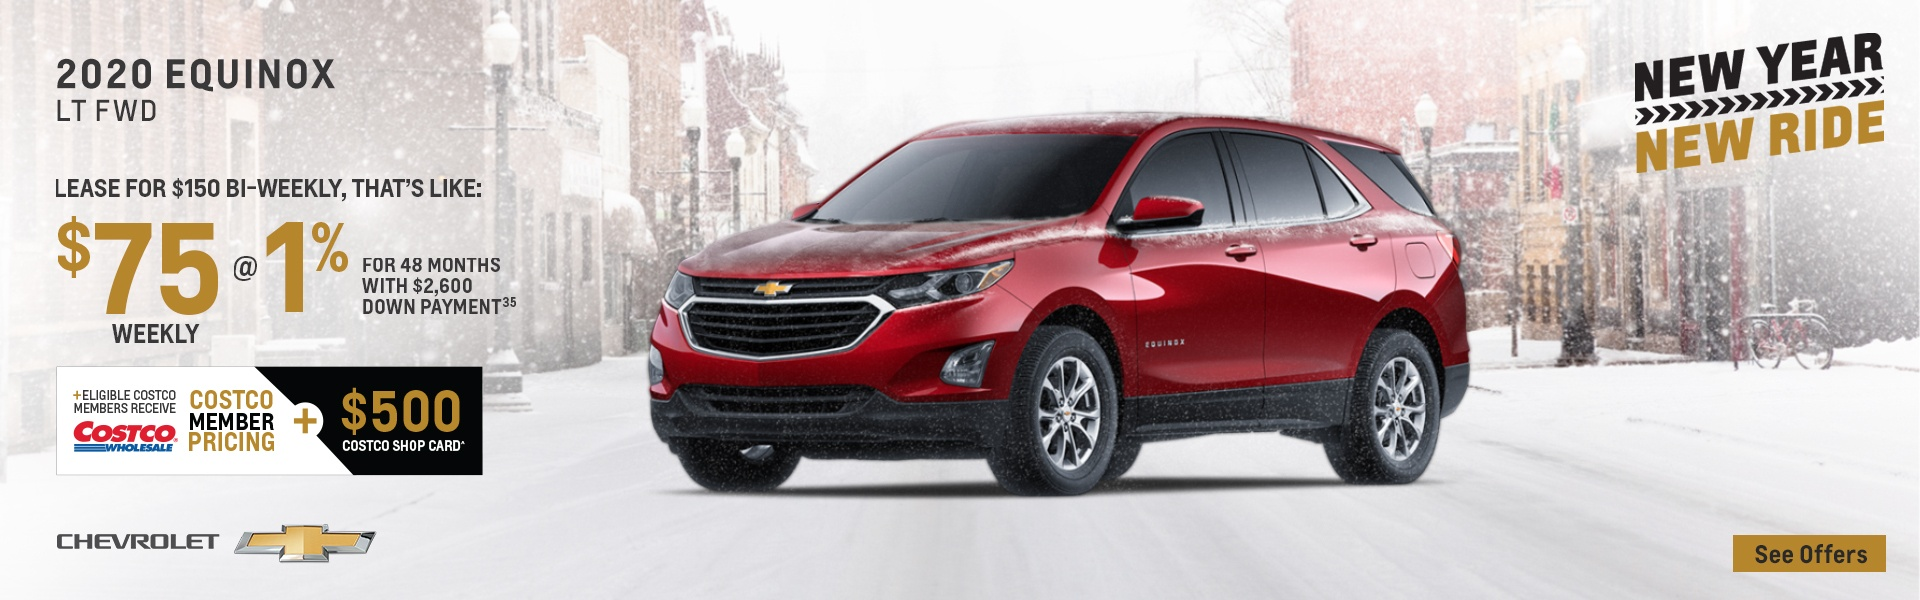 2020_CNT_Chevy_Multi_JAN_EN_T3_1920x600_v2_Equinox